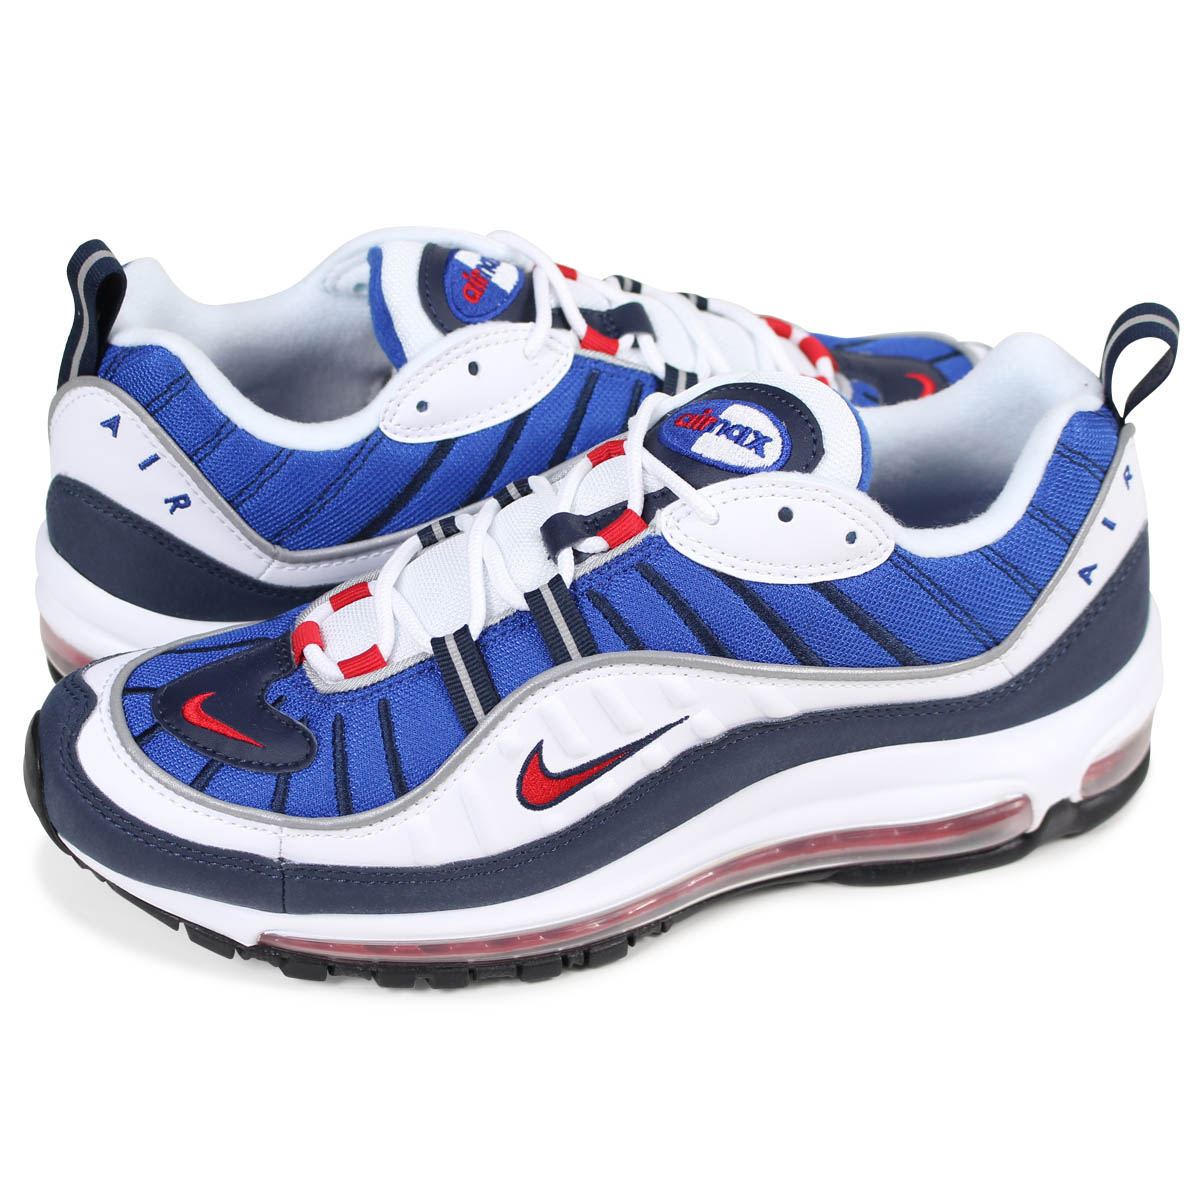 86ceb035e3 Whats up Sports: NIKE AIR MAX 98 GUNDAM Kie Ney AMAX 98 sneakers men  640,744-100 white [load planned Shinnyu load in reservation product 2/14  containing] ...